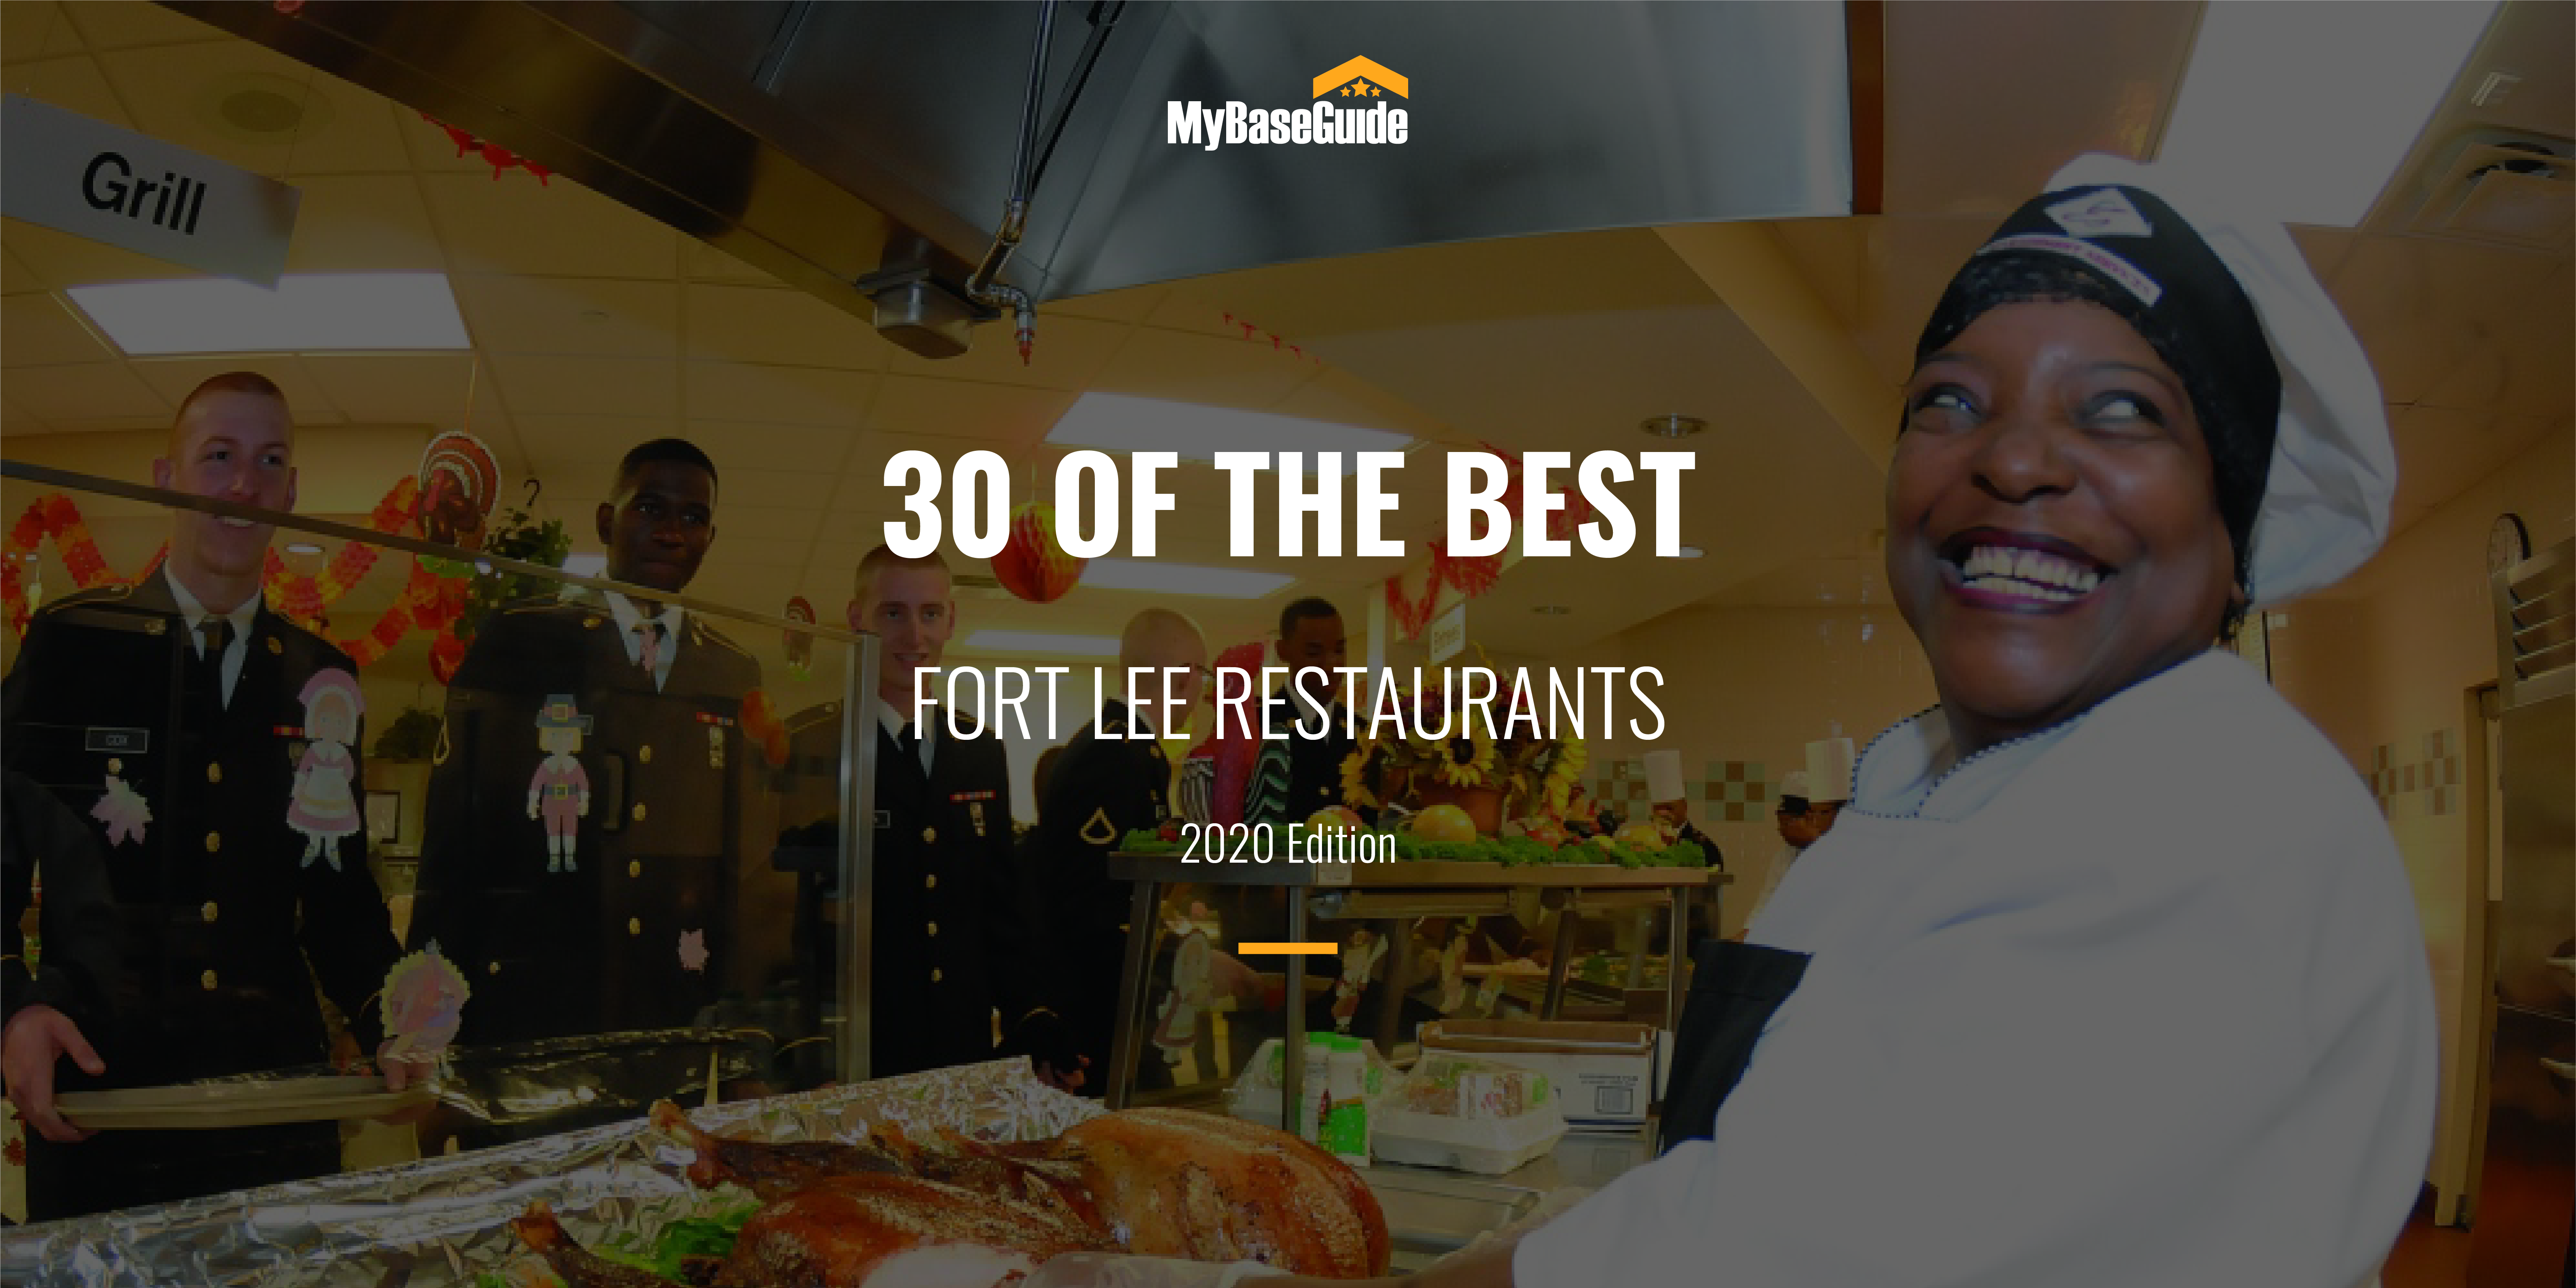 30 of the Best Fort Lee Restaurants